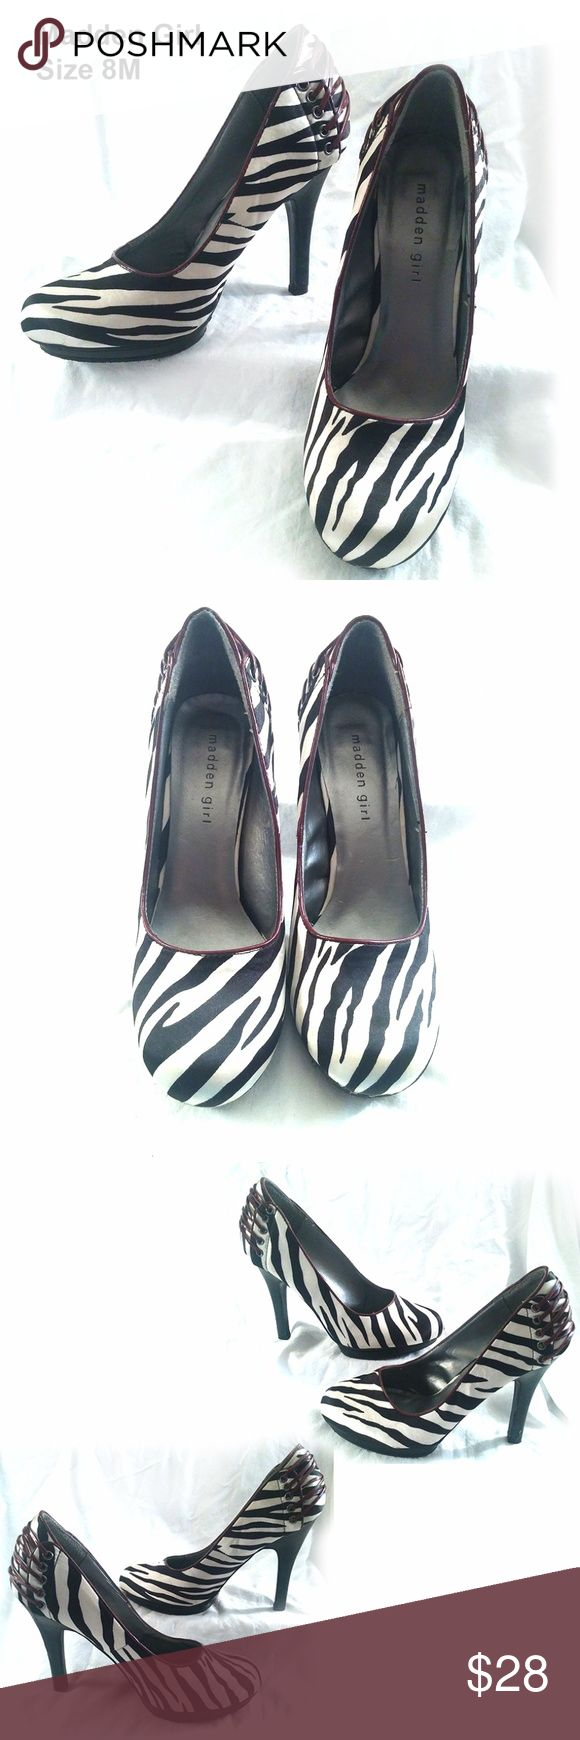 """MADDEN GIRL - Brown & Cream Zebra Heels - Size 8M CONDITION - VERY GOOD 4"""" Heels  The only thing that keeps these beauties from receiving an """"excellent"""" status is a small divet on the left heel, which could be concealed with a marker.Otherwise, the shoes are in amazing condition.  Cream and brown zebra stripe silky fabric uppers with brown laces on the heels.  Rounded toe for comfort. Madden Girl Shoes Heels"""